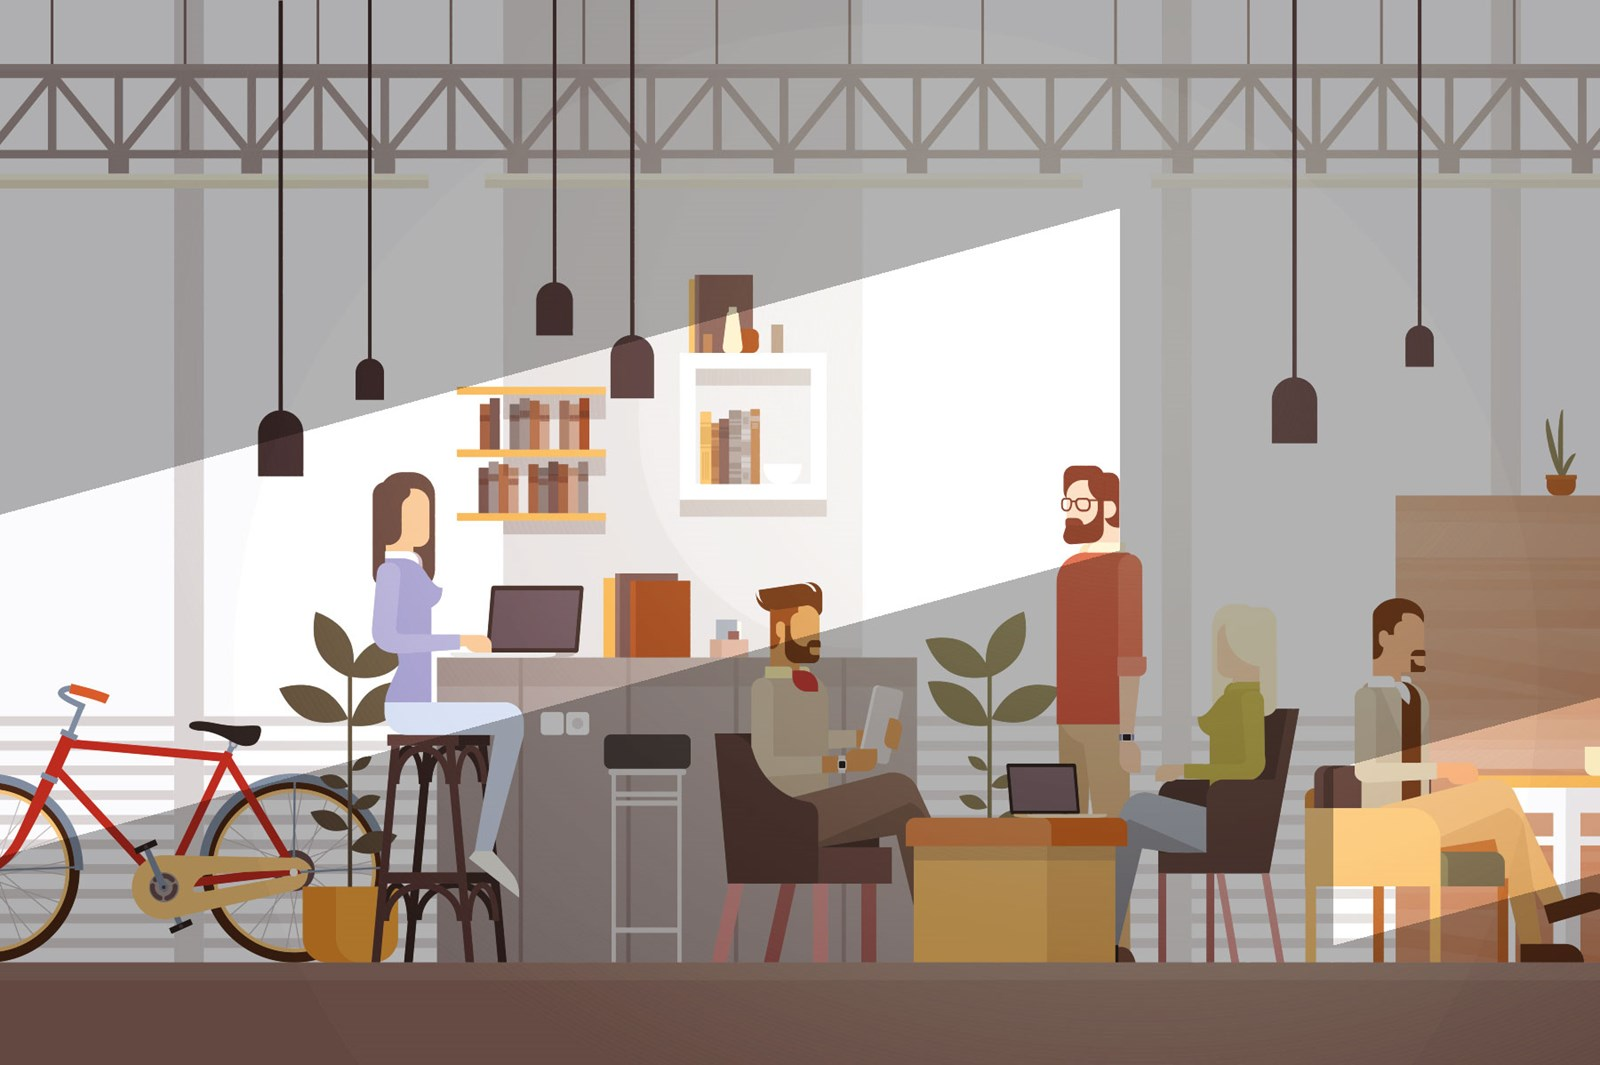 Better service, happier customers: How digital technology is driving the future of flexible workspaces